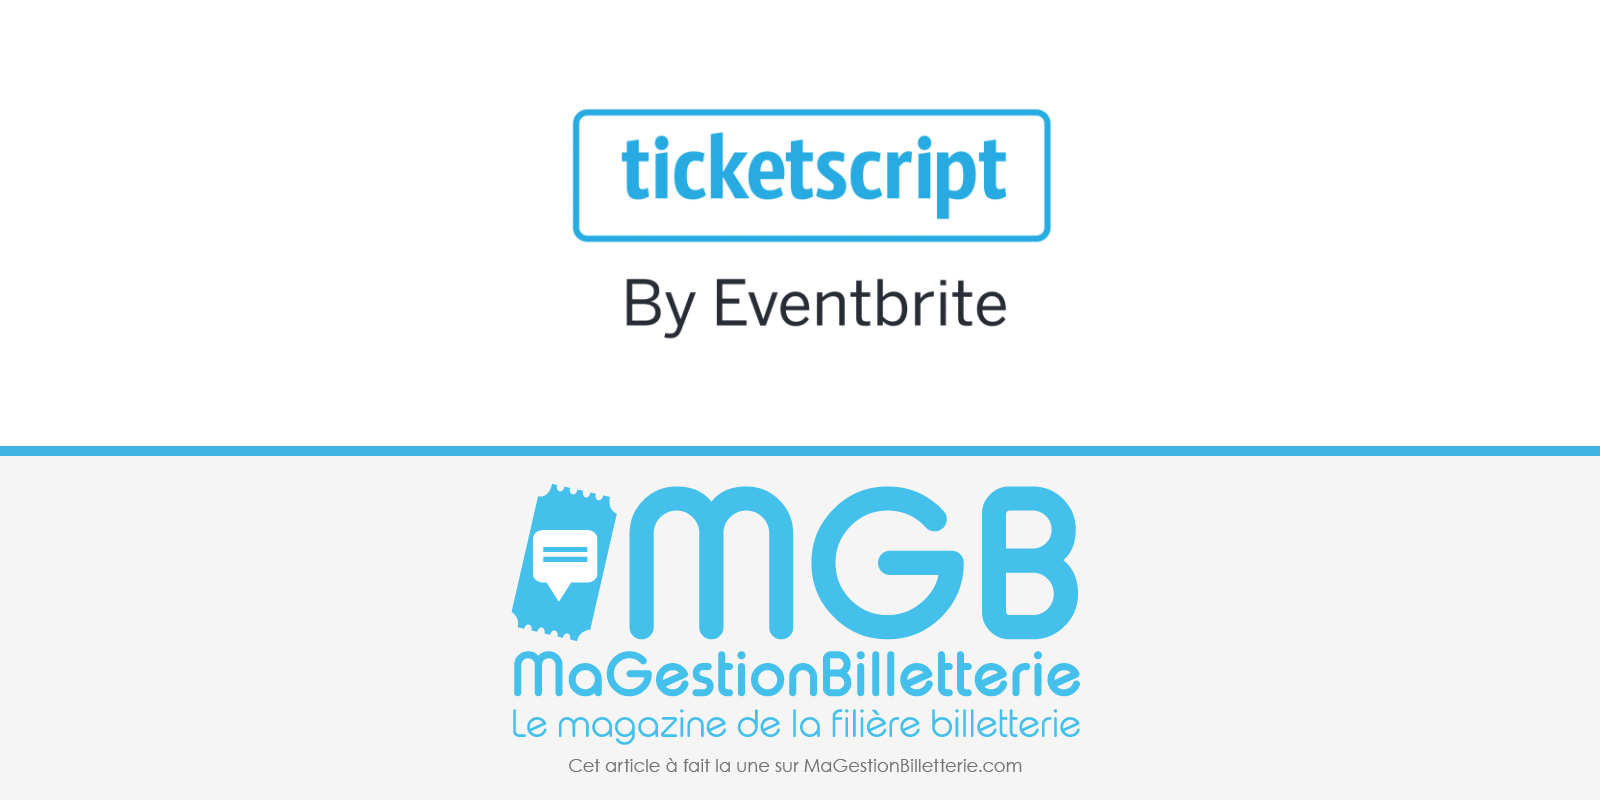 ticketscript-eventbrite-une5